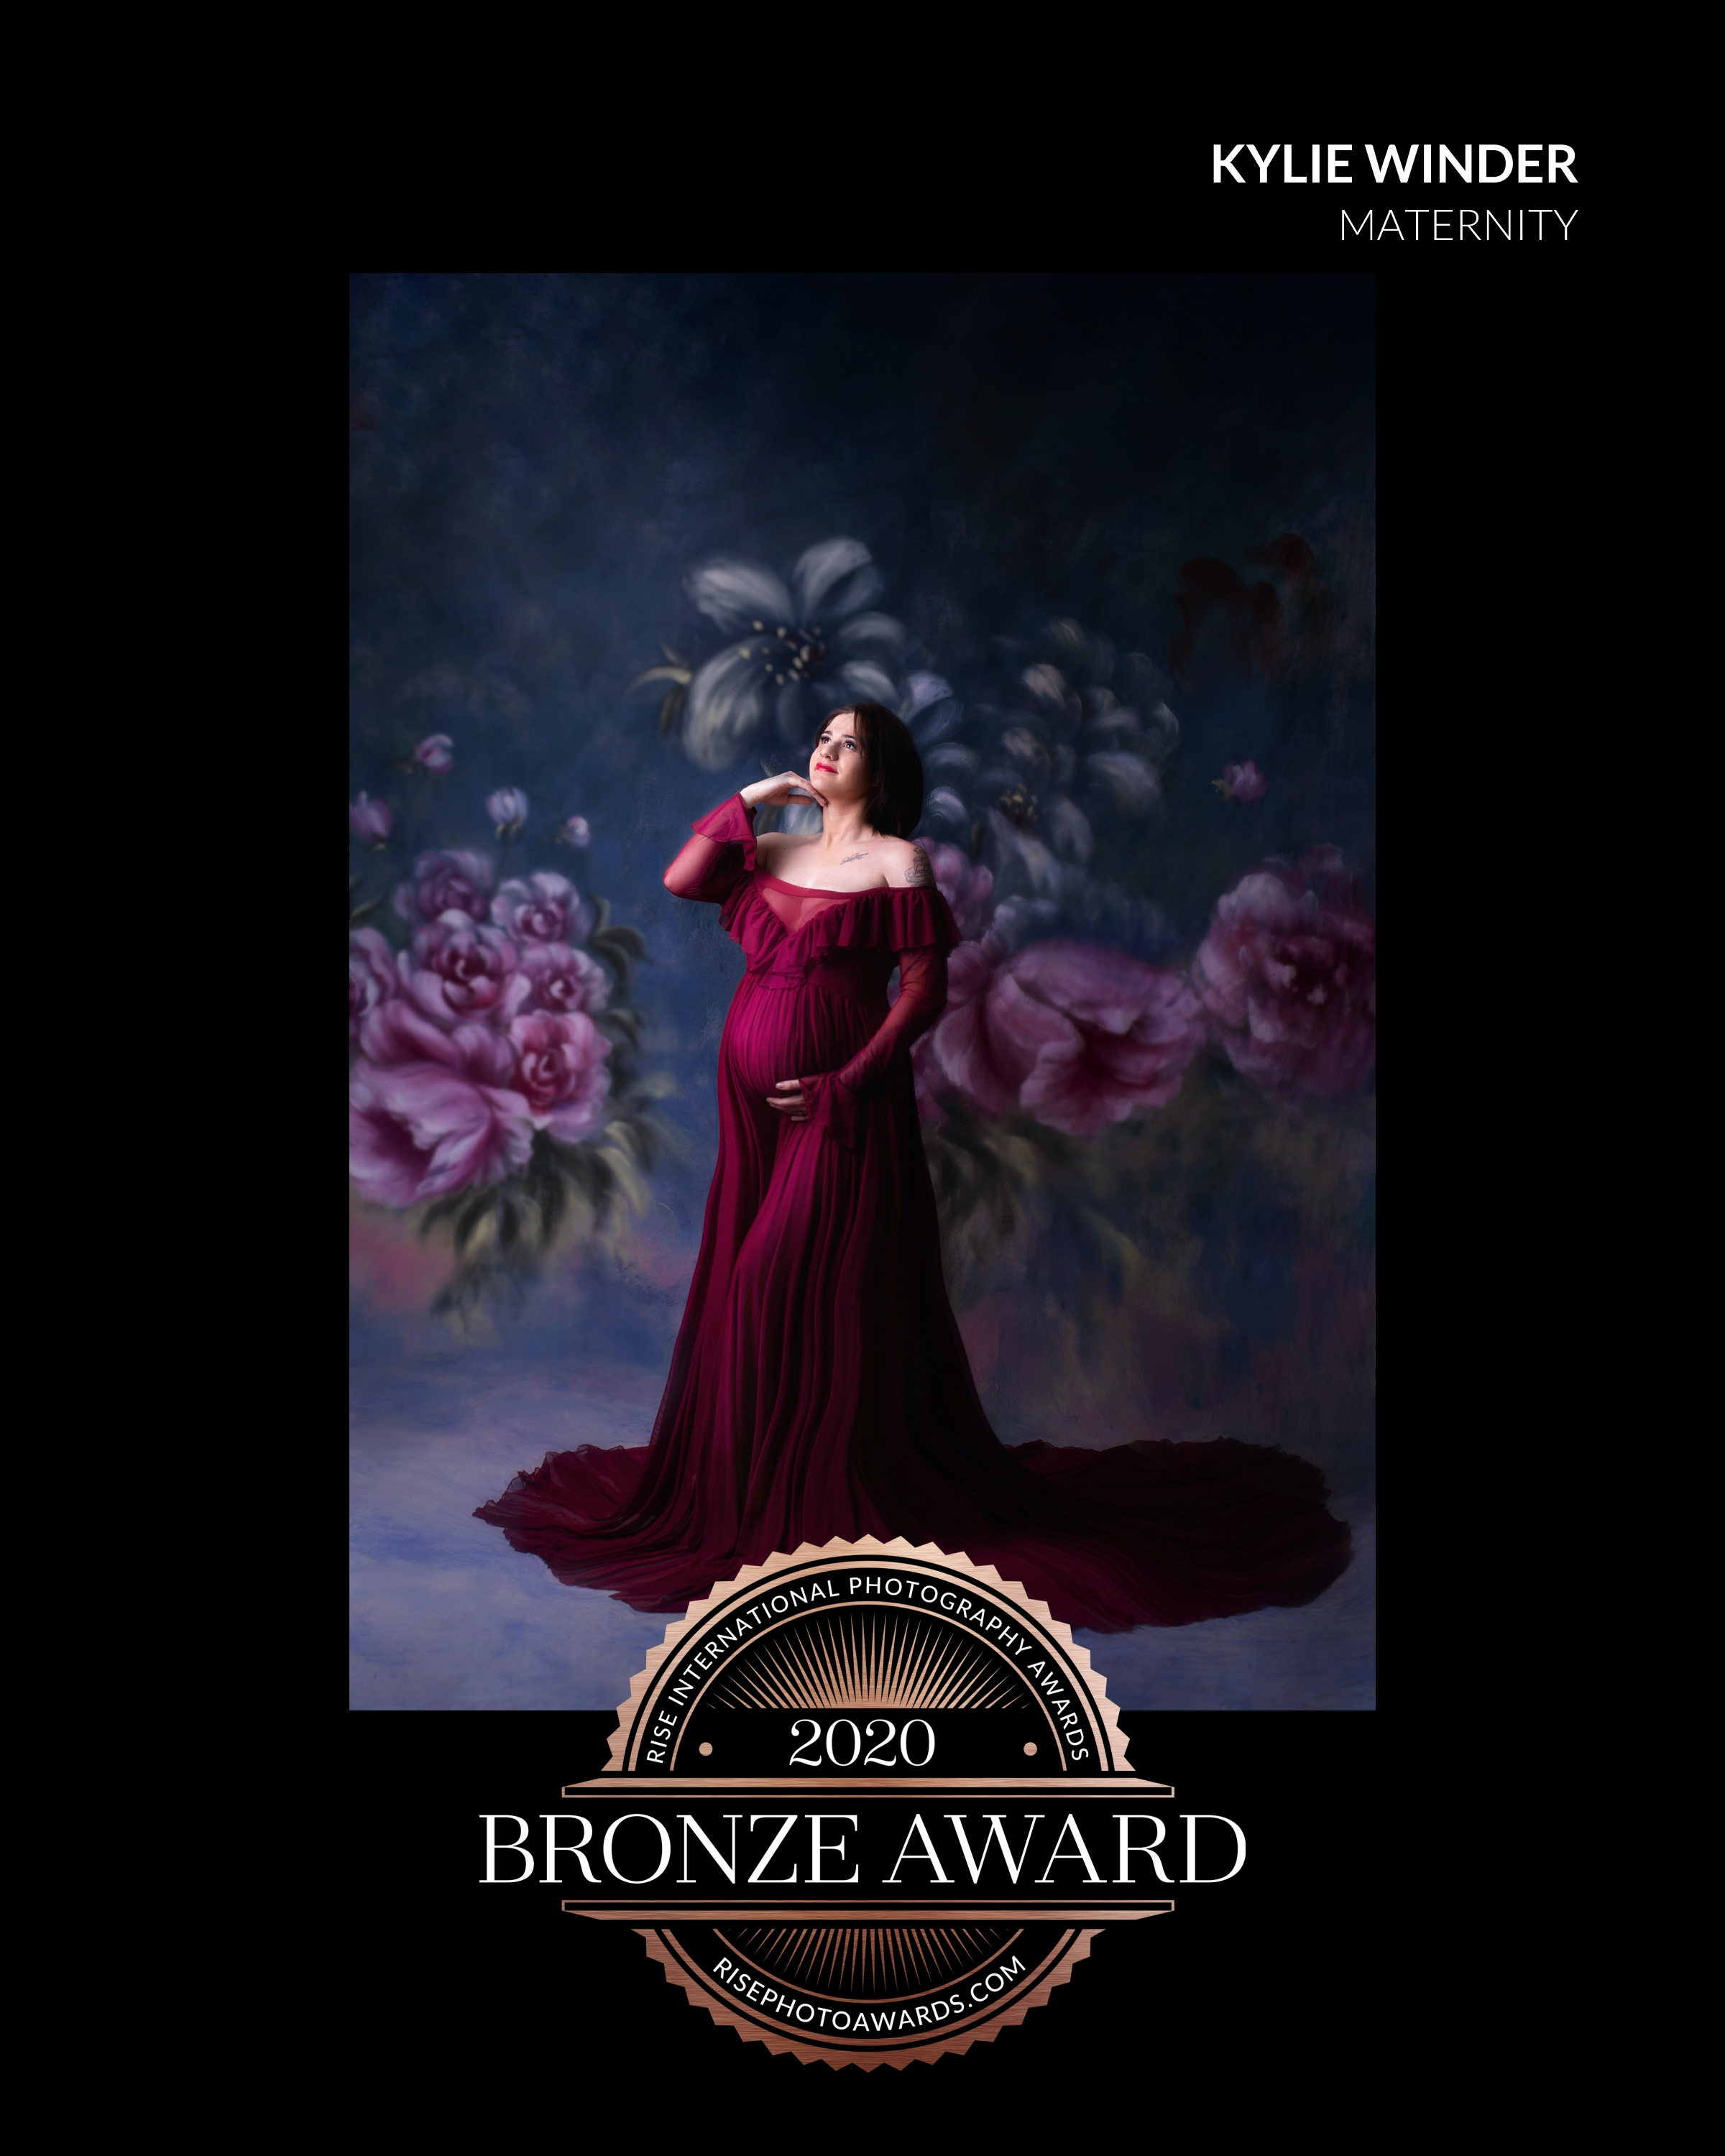 Bronze Maternity Award